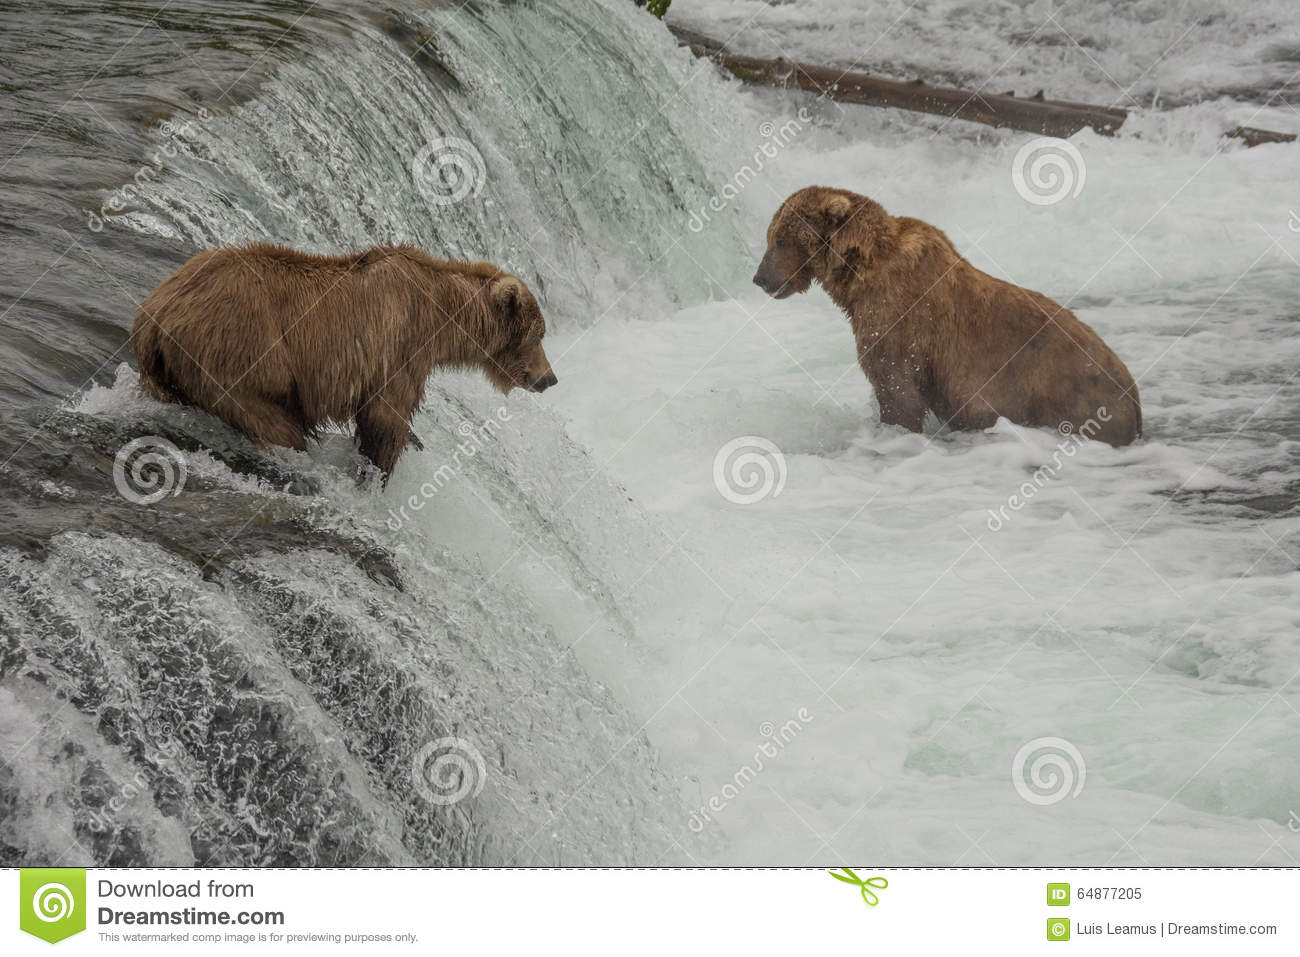 Dozens of grizzly bears gather at Brook Falls during the annual salmon run, Alaska